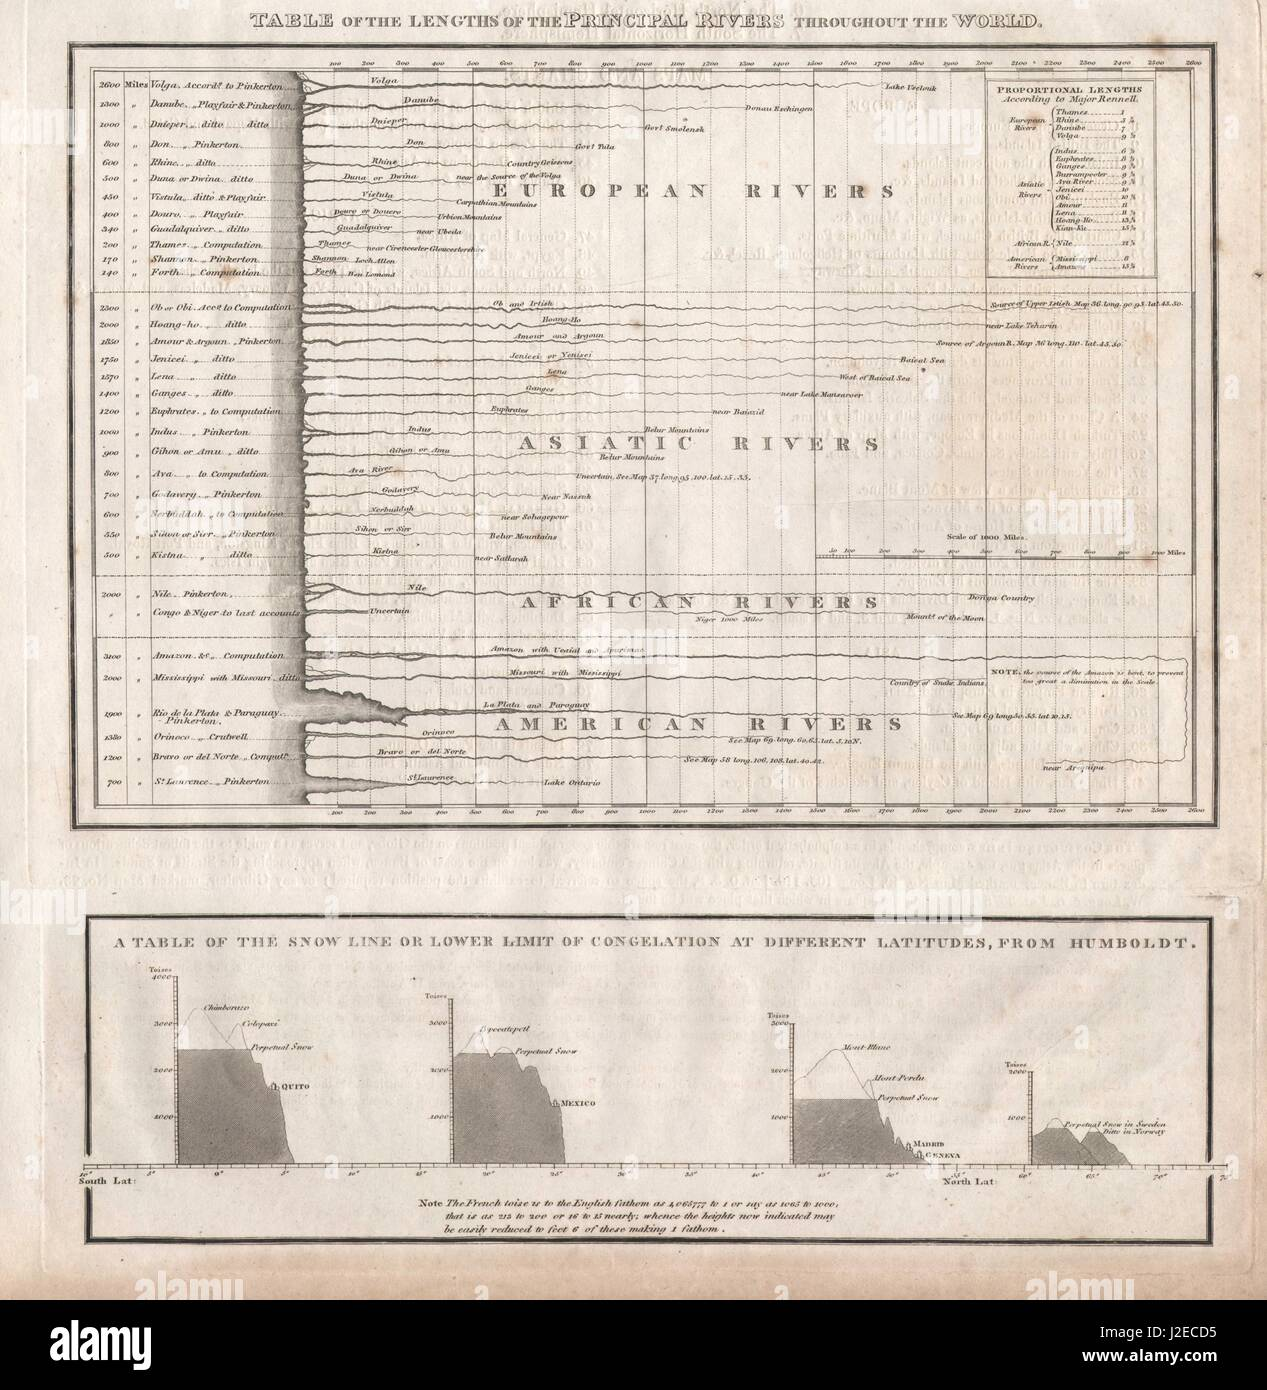 Principal rivers comparative lengths. Snowline at different latitudes 1817 map - Stock Image